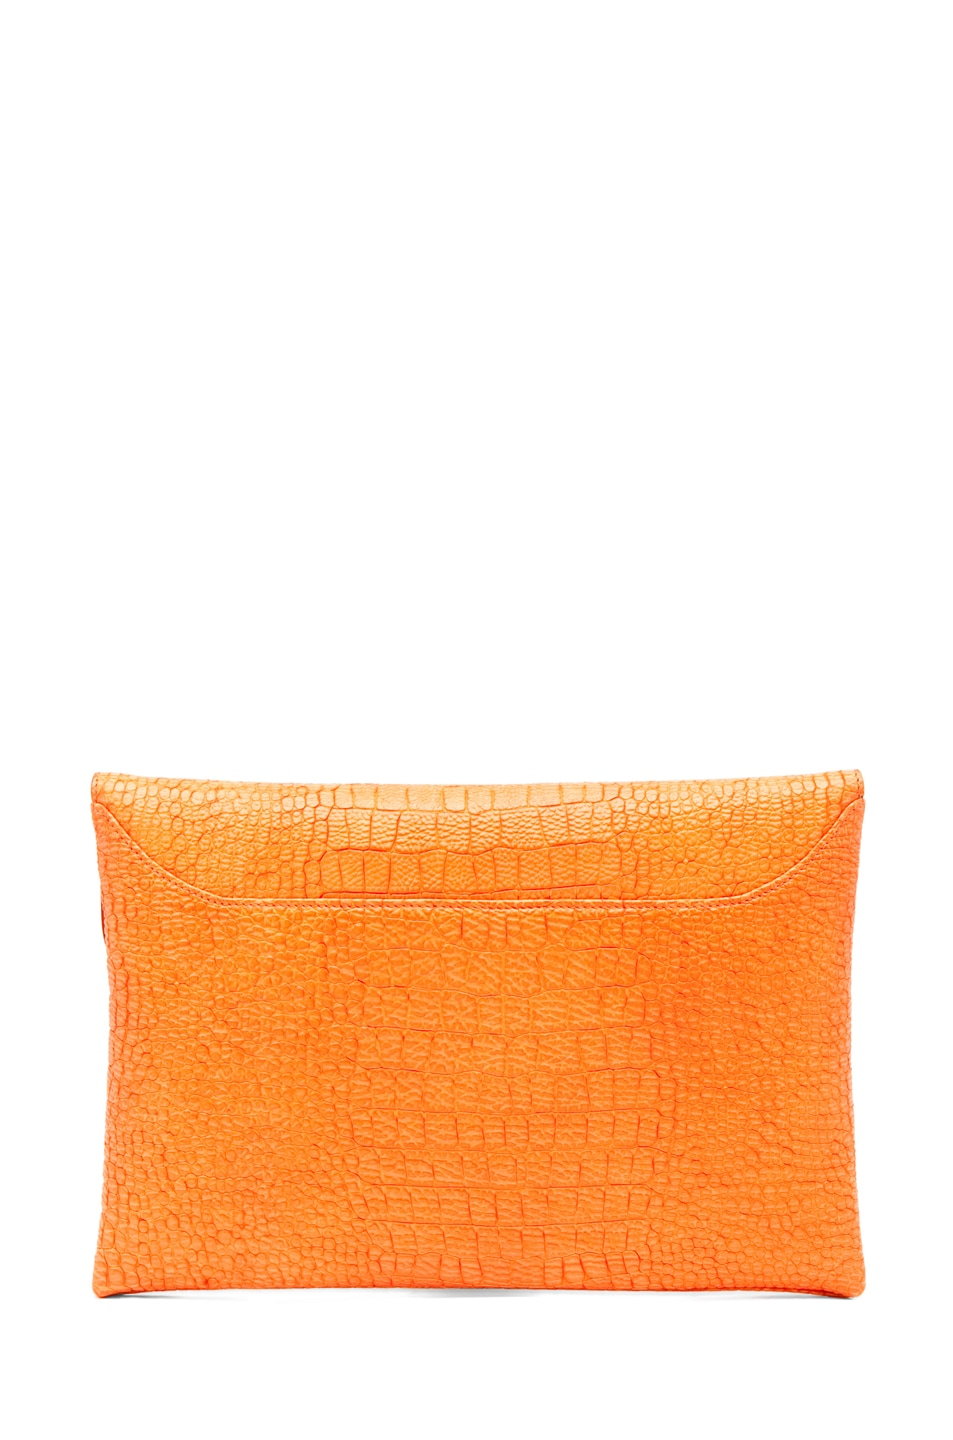 Image 2 of GIVENCHY Envelope Clutch in Orange